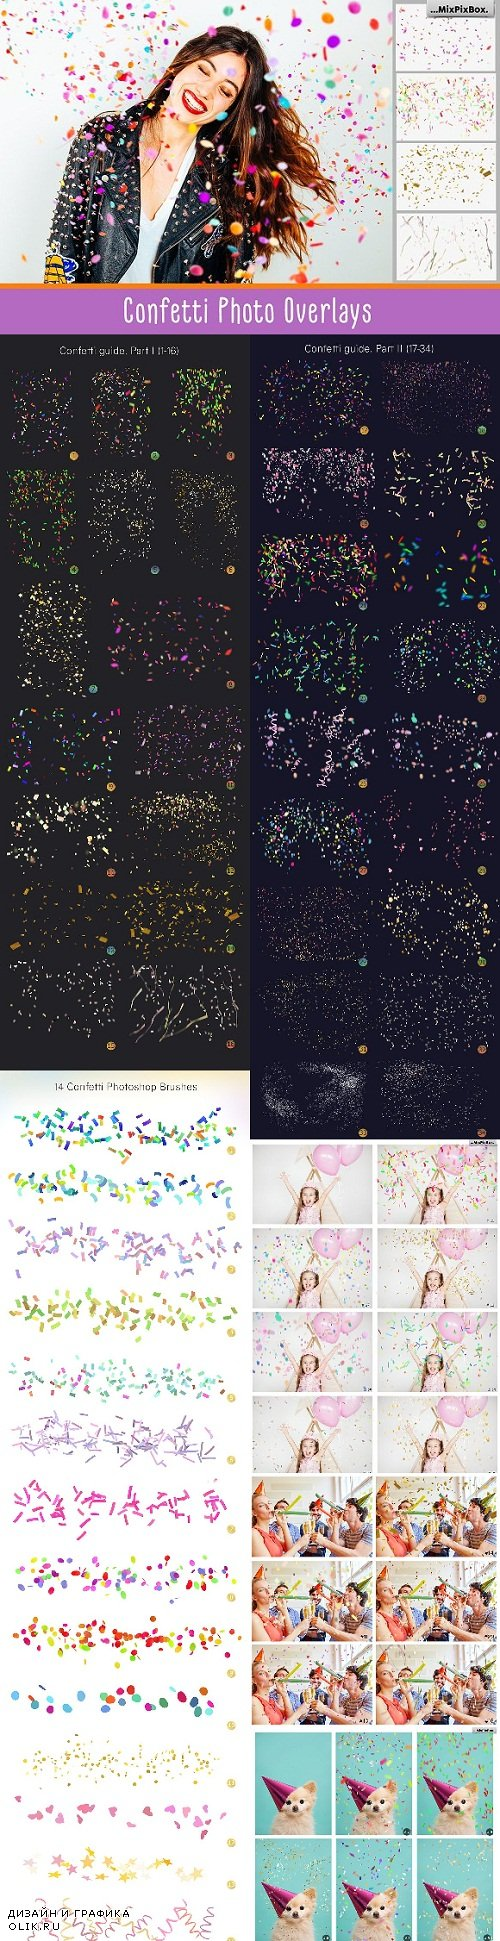 Confetti overlays + PS brushes 1571697